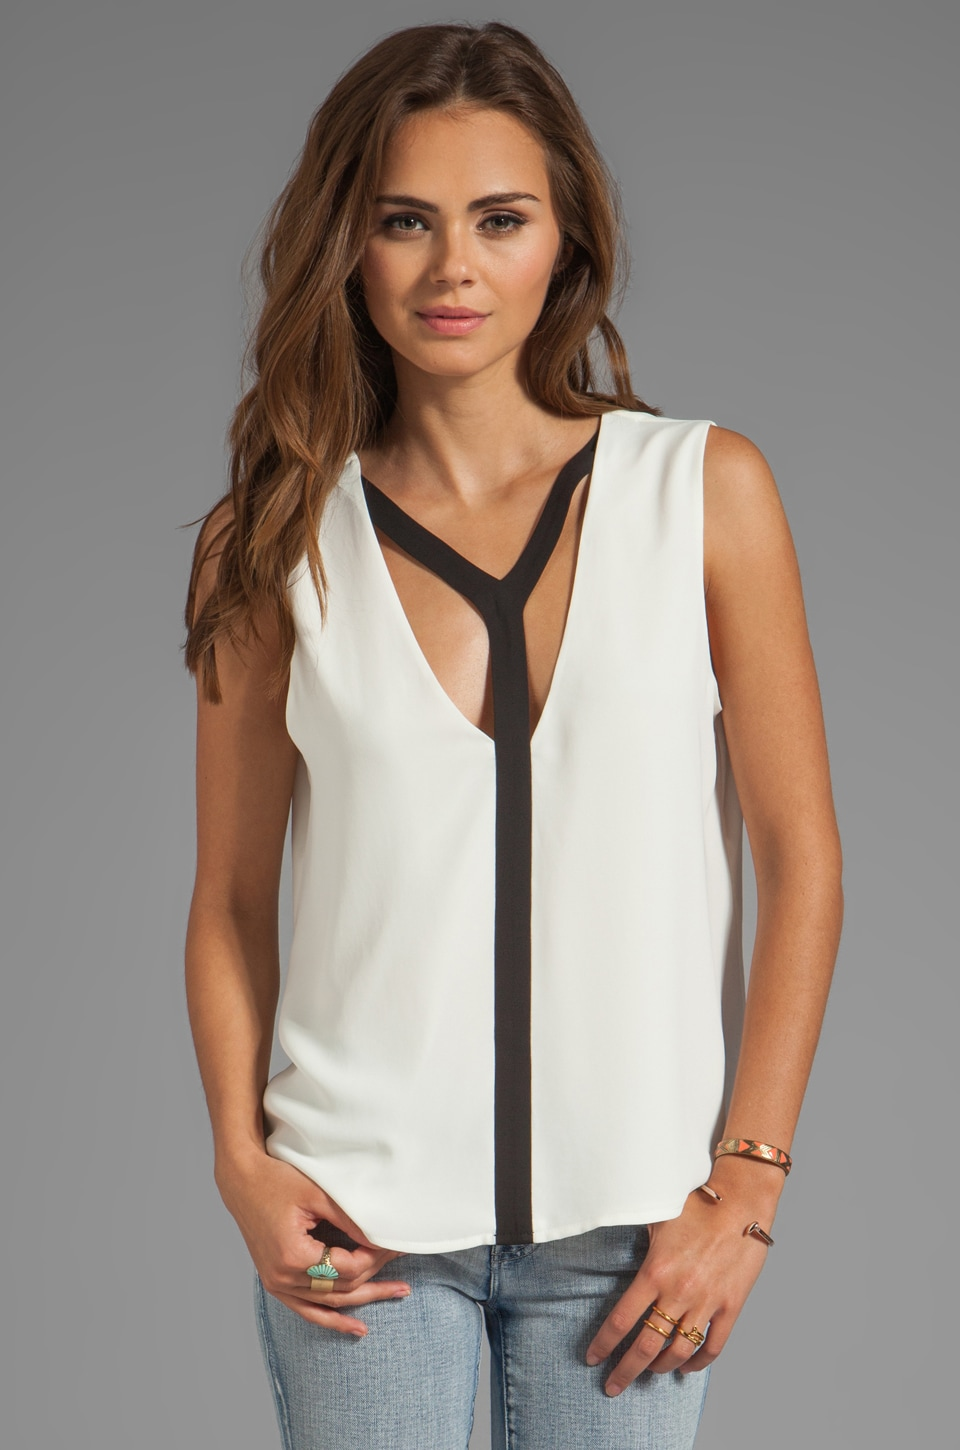 BCBGMAXAZRIA Black Trim Combo Top in Off White